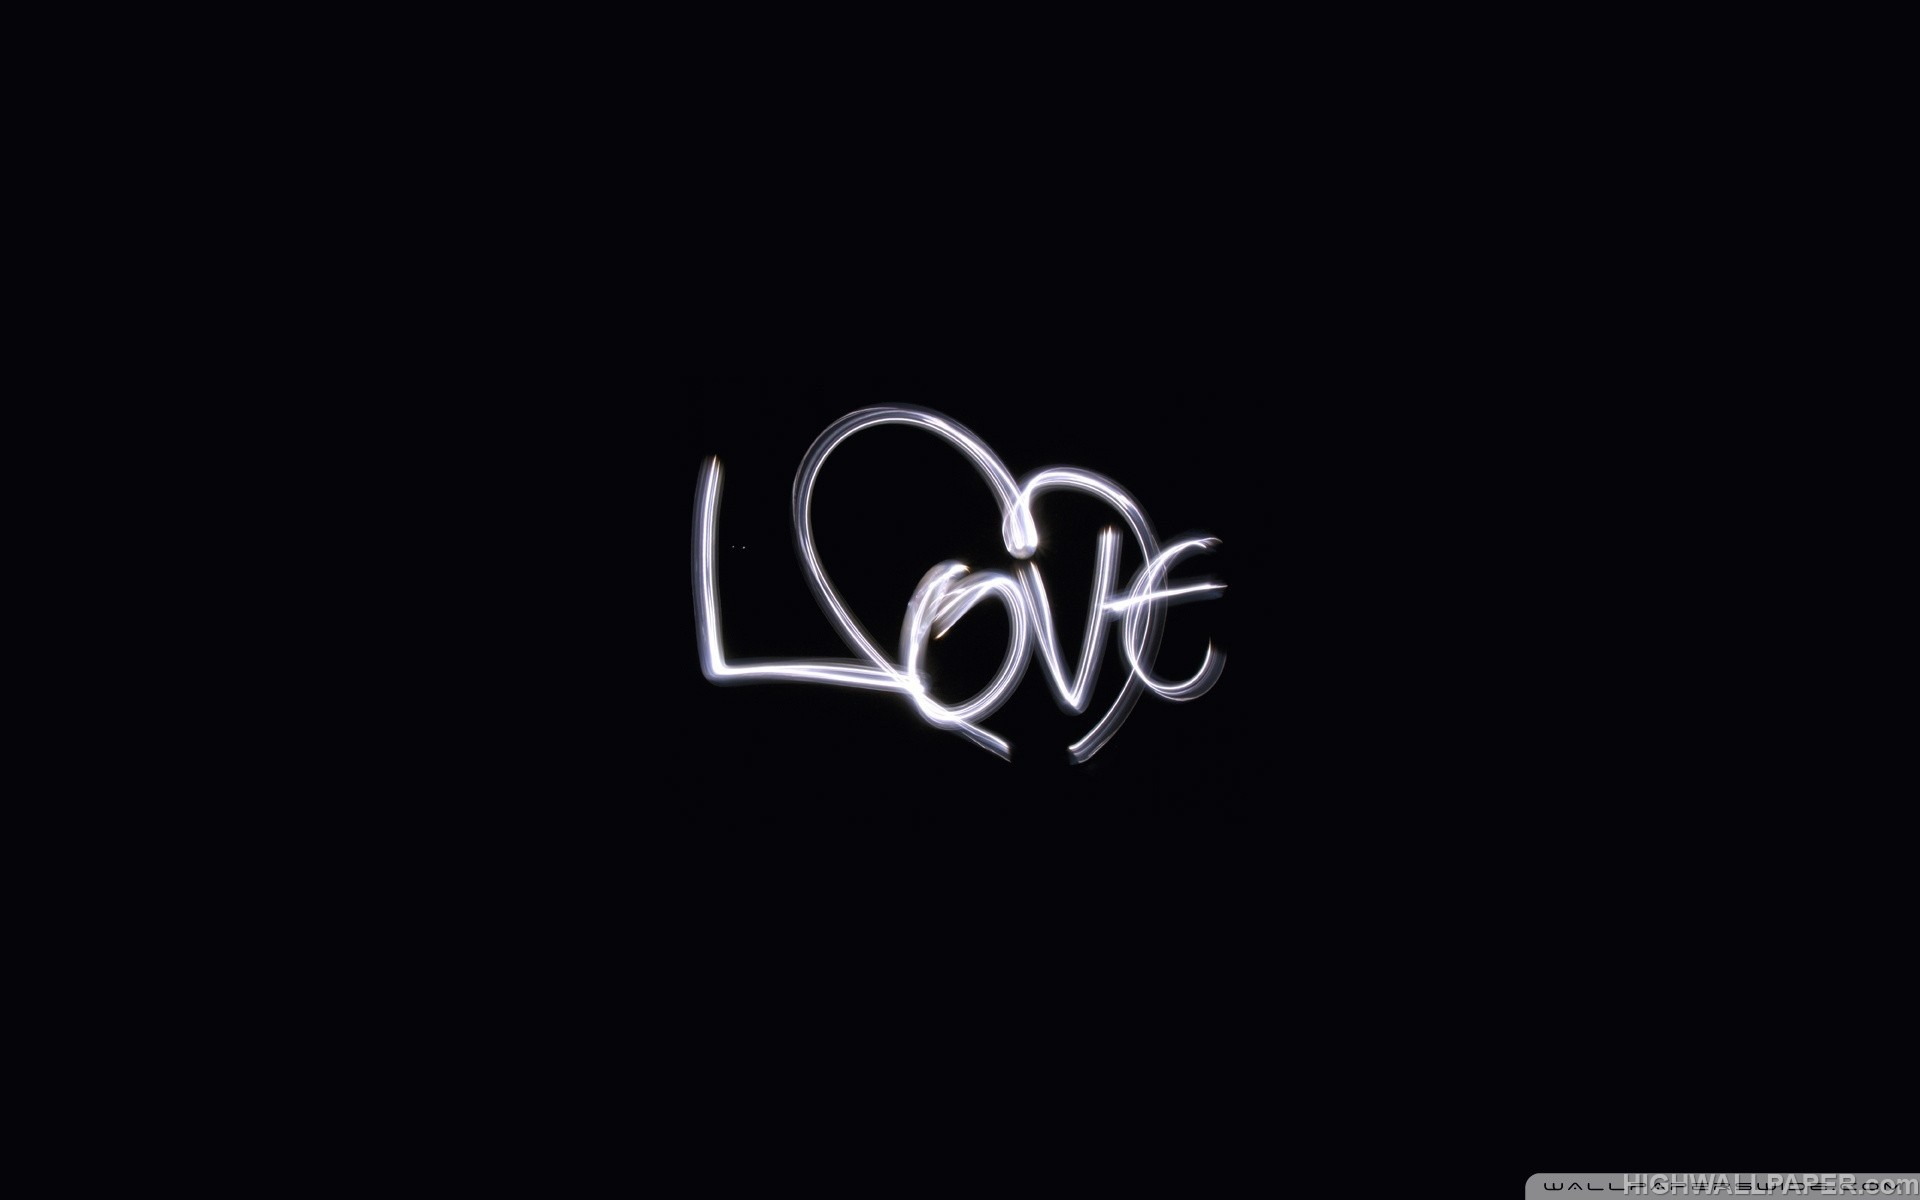 Love text in black background hd wallpaper for Pictures of black lovers